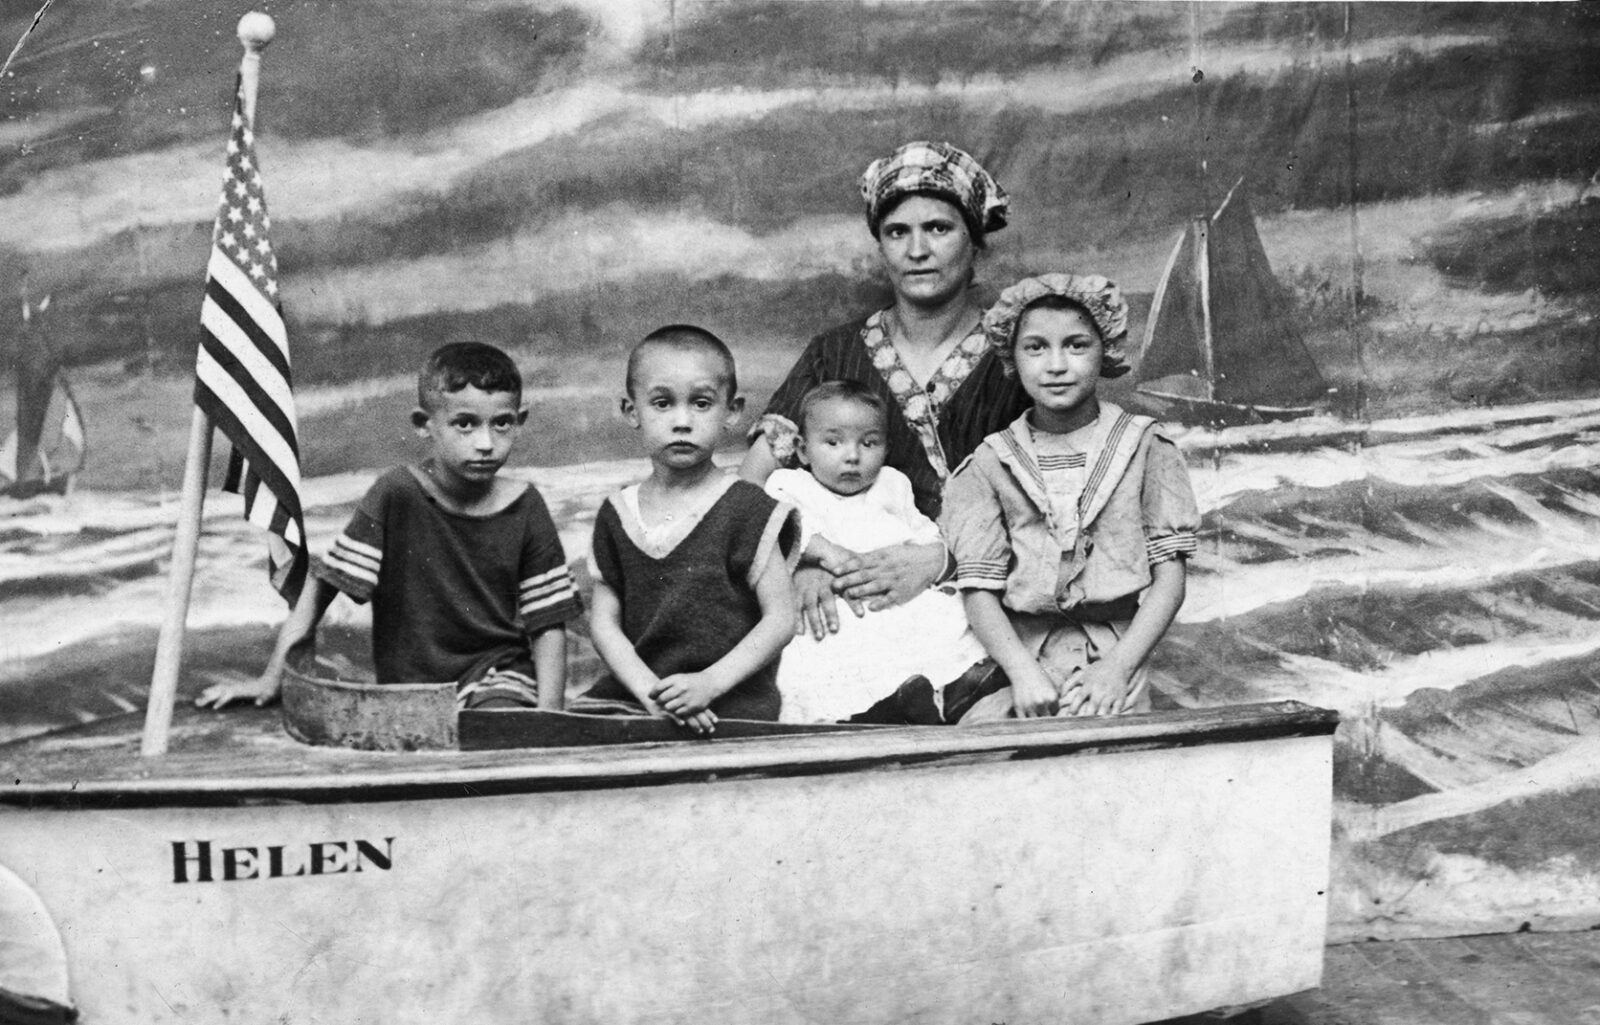 Black and white photo of an adult woman, 3 young children, and a baby posing behind a prop boat and painted ocean background